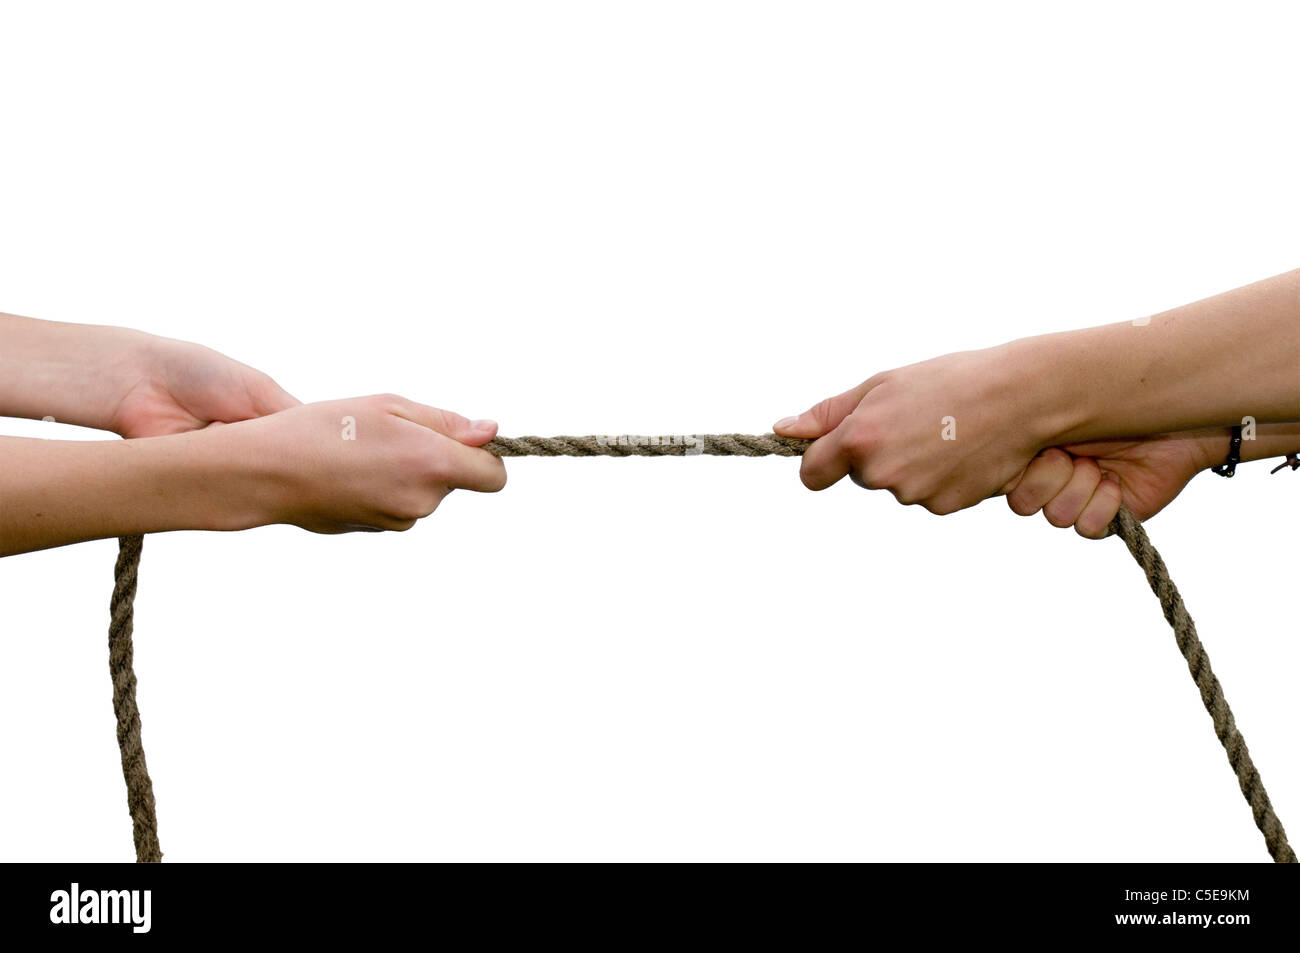 Close-up of hands playing the tug of war against white background Stock Photo